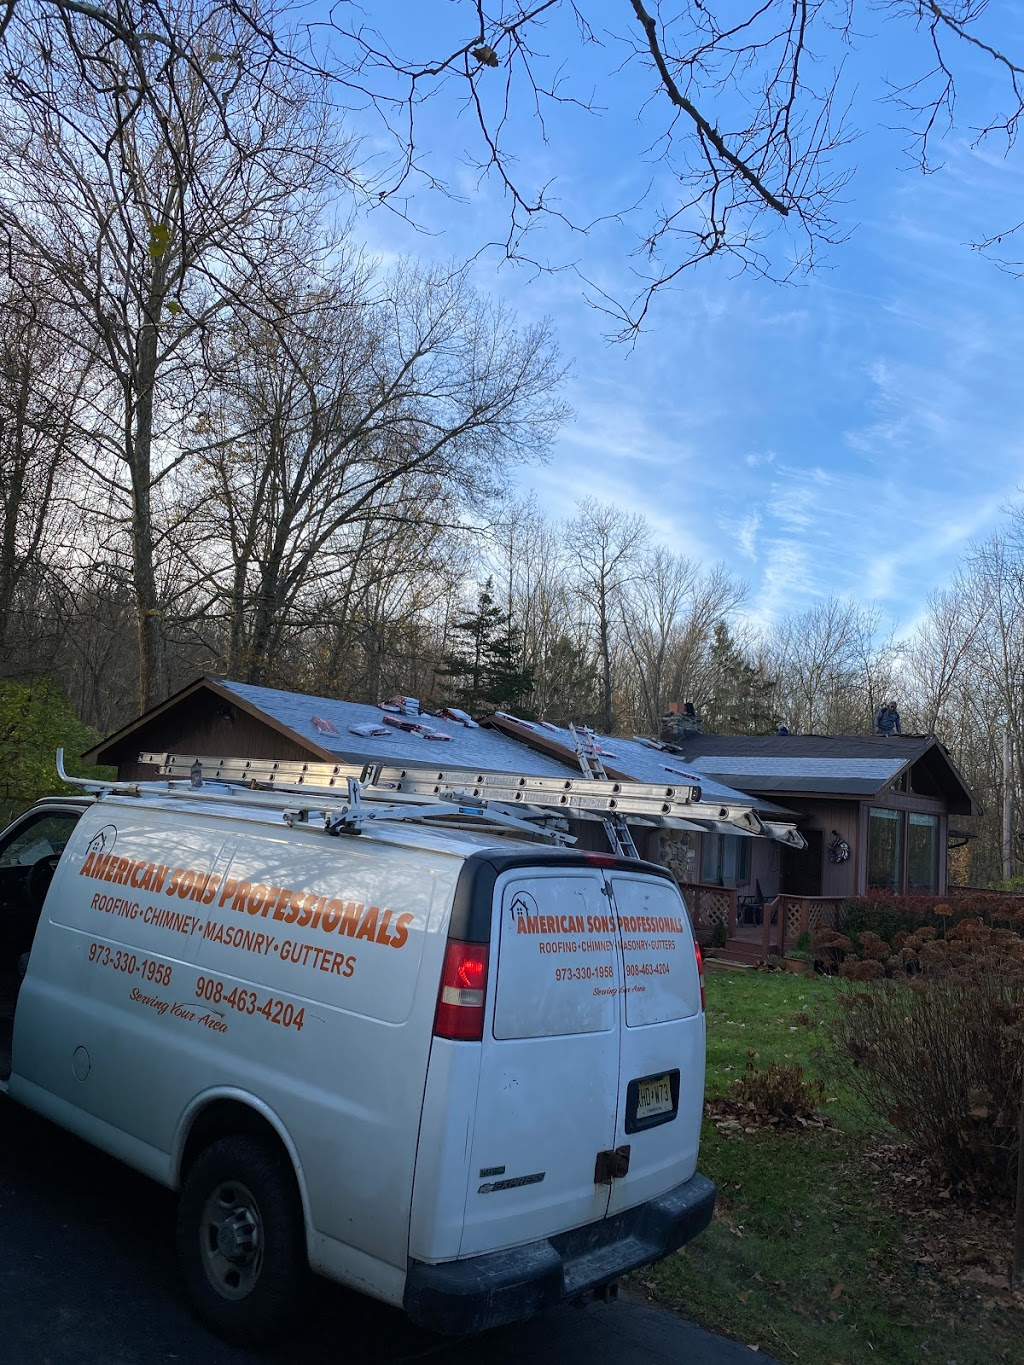 American Sons Professionals Roofing & Chimney - roofing contractor  | Photo 7 of 10 | Address: 425 Riverside Dr, Wayne, NJ 07470, USA | Phone: (201) 396-5509